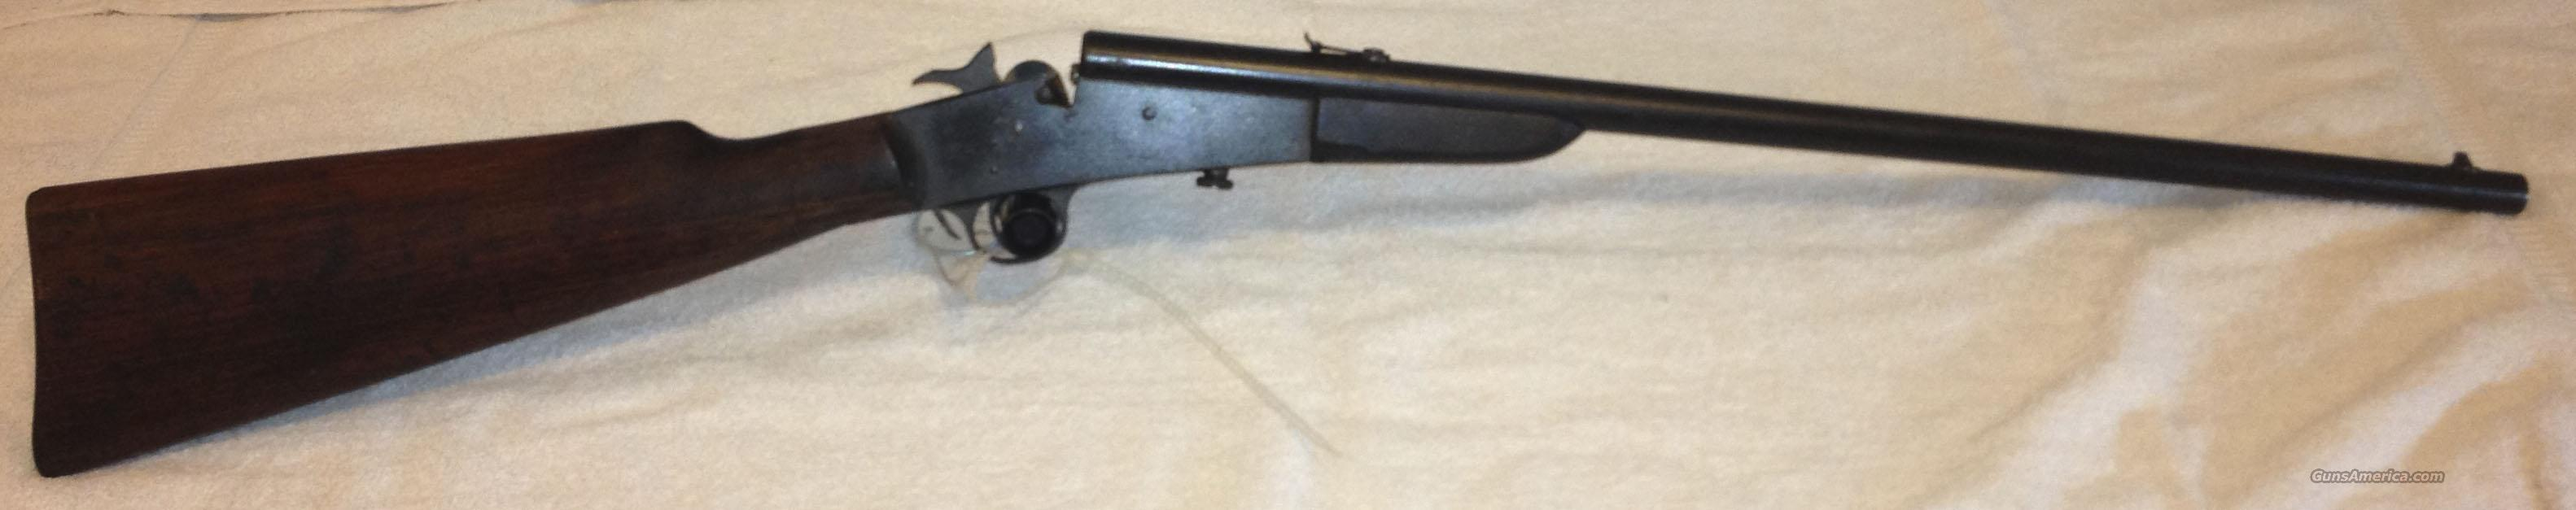 Remington Model 6 .22  Guns > Rifles > Remington Rifles - Modern > .22 Rimfire Models